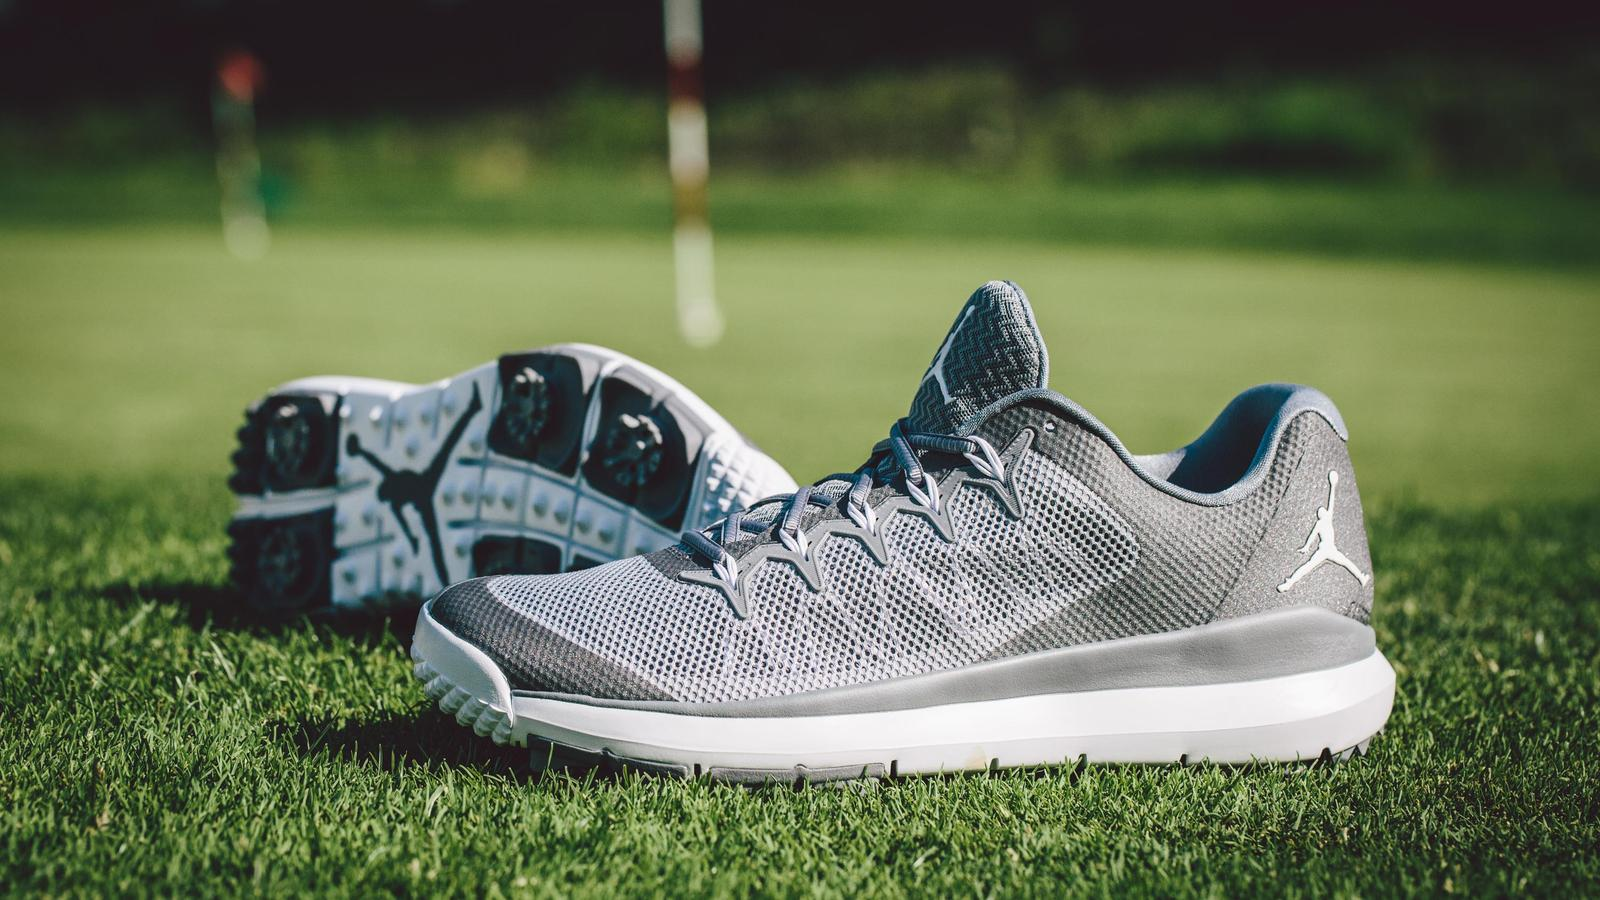 pretty nice 49186 baeba Fore Jordan  Introducing The Flight Runner Golf Shoe